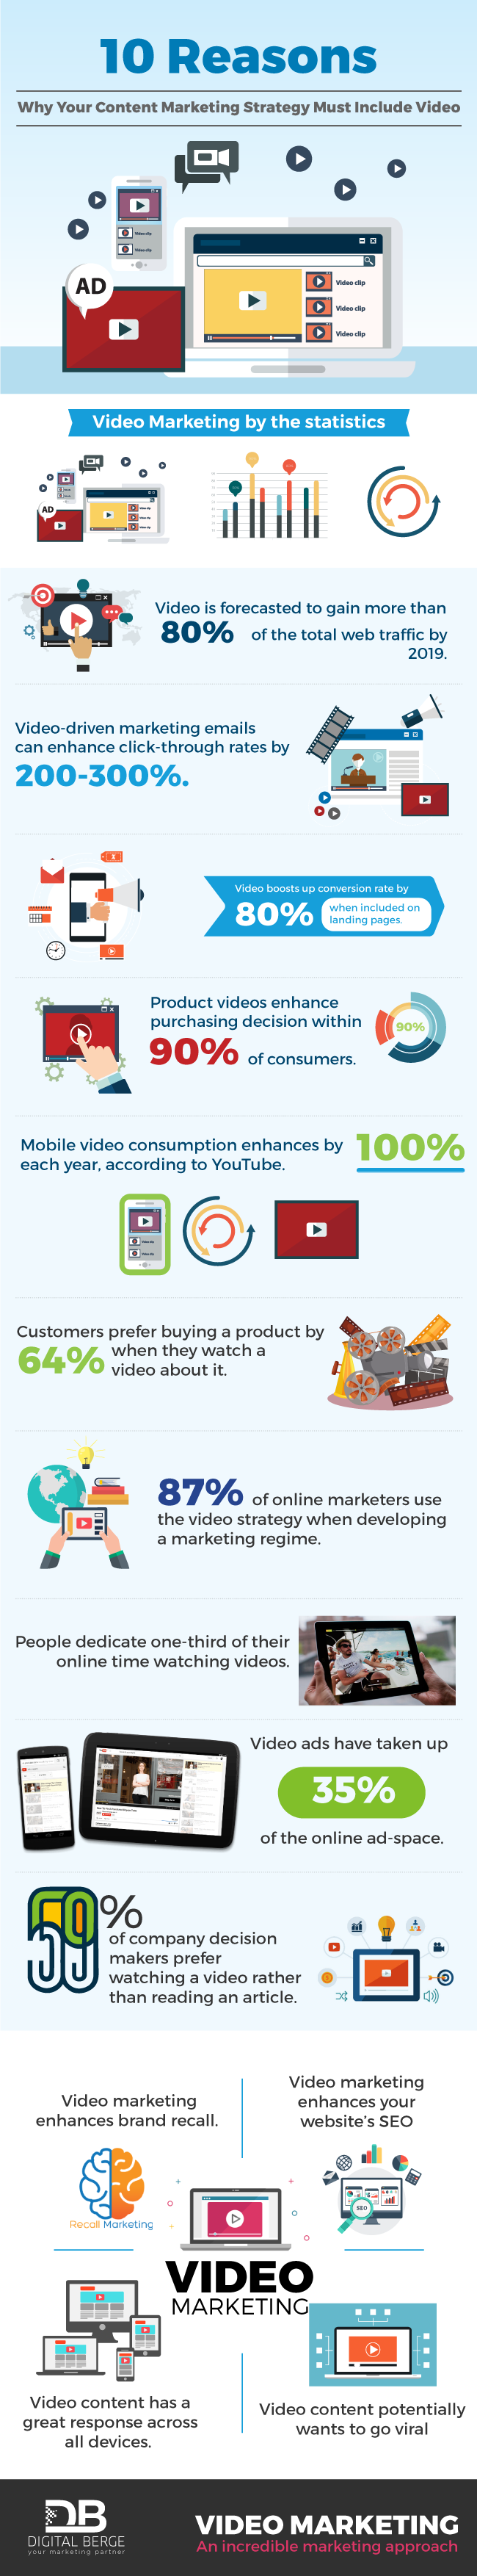 10 Reasons Why Your Content Marketing Strategy Must Include Video